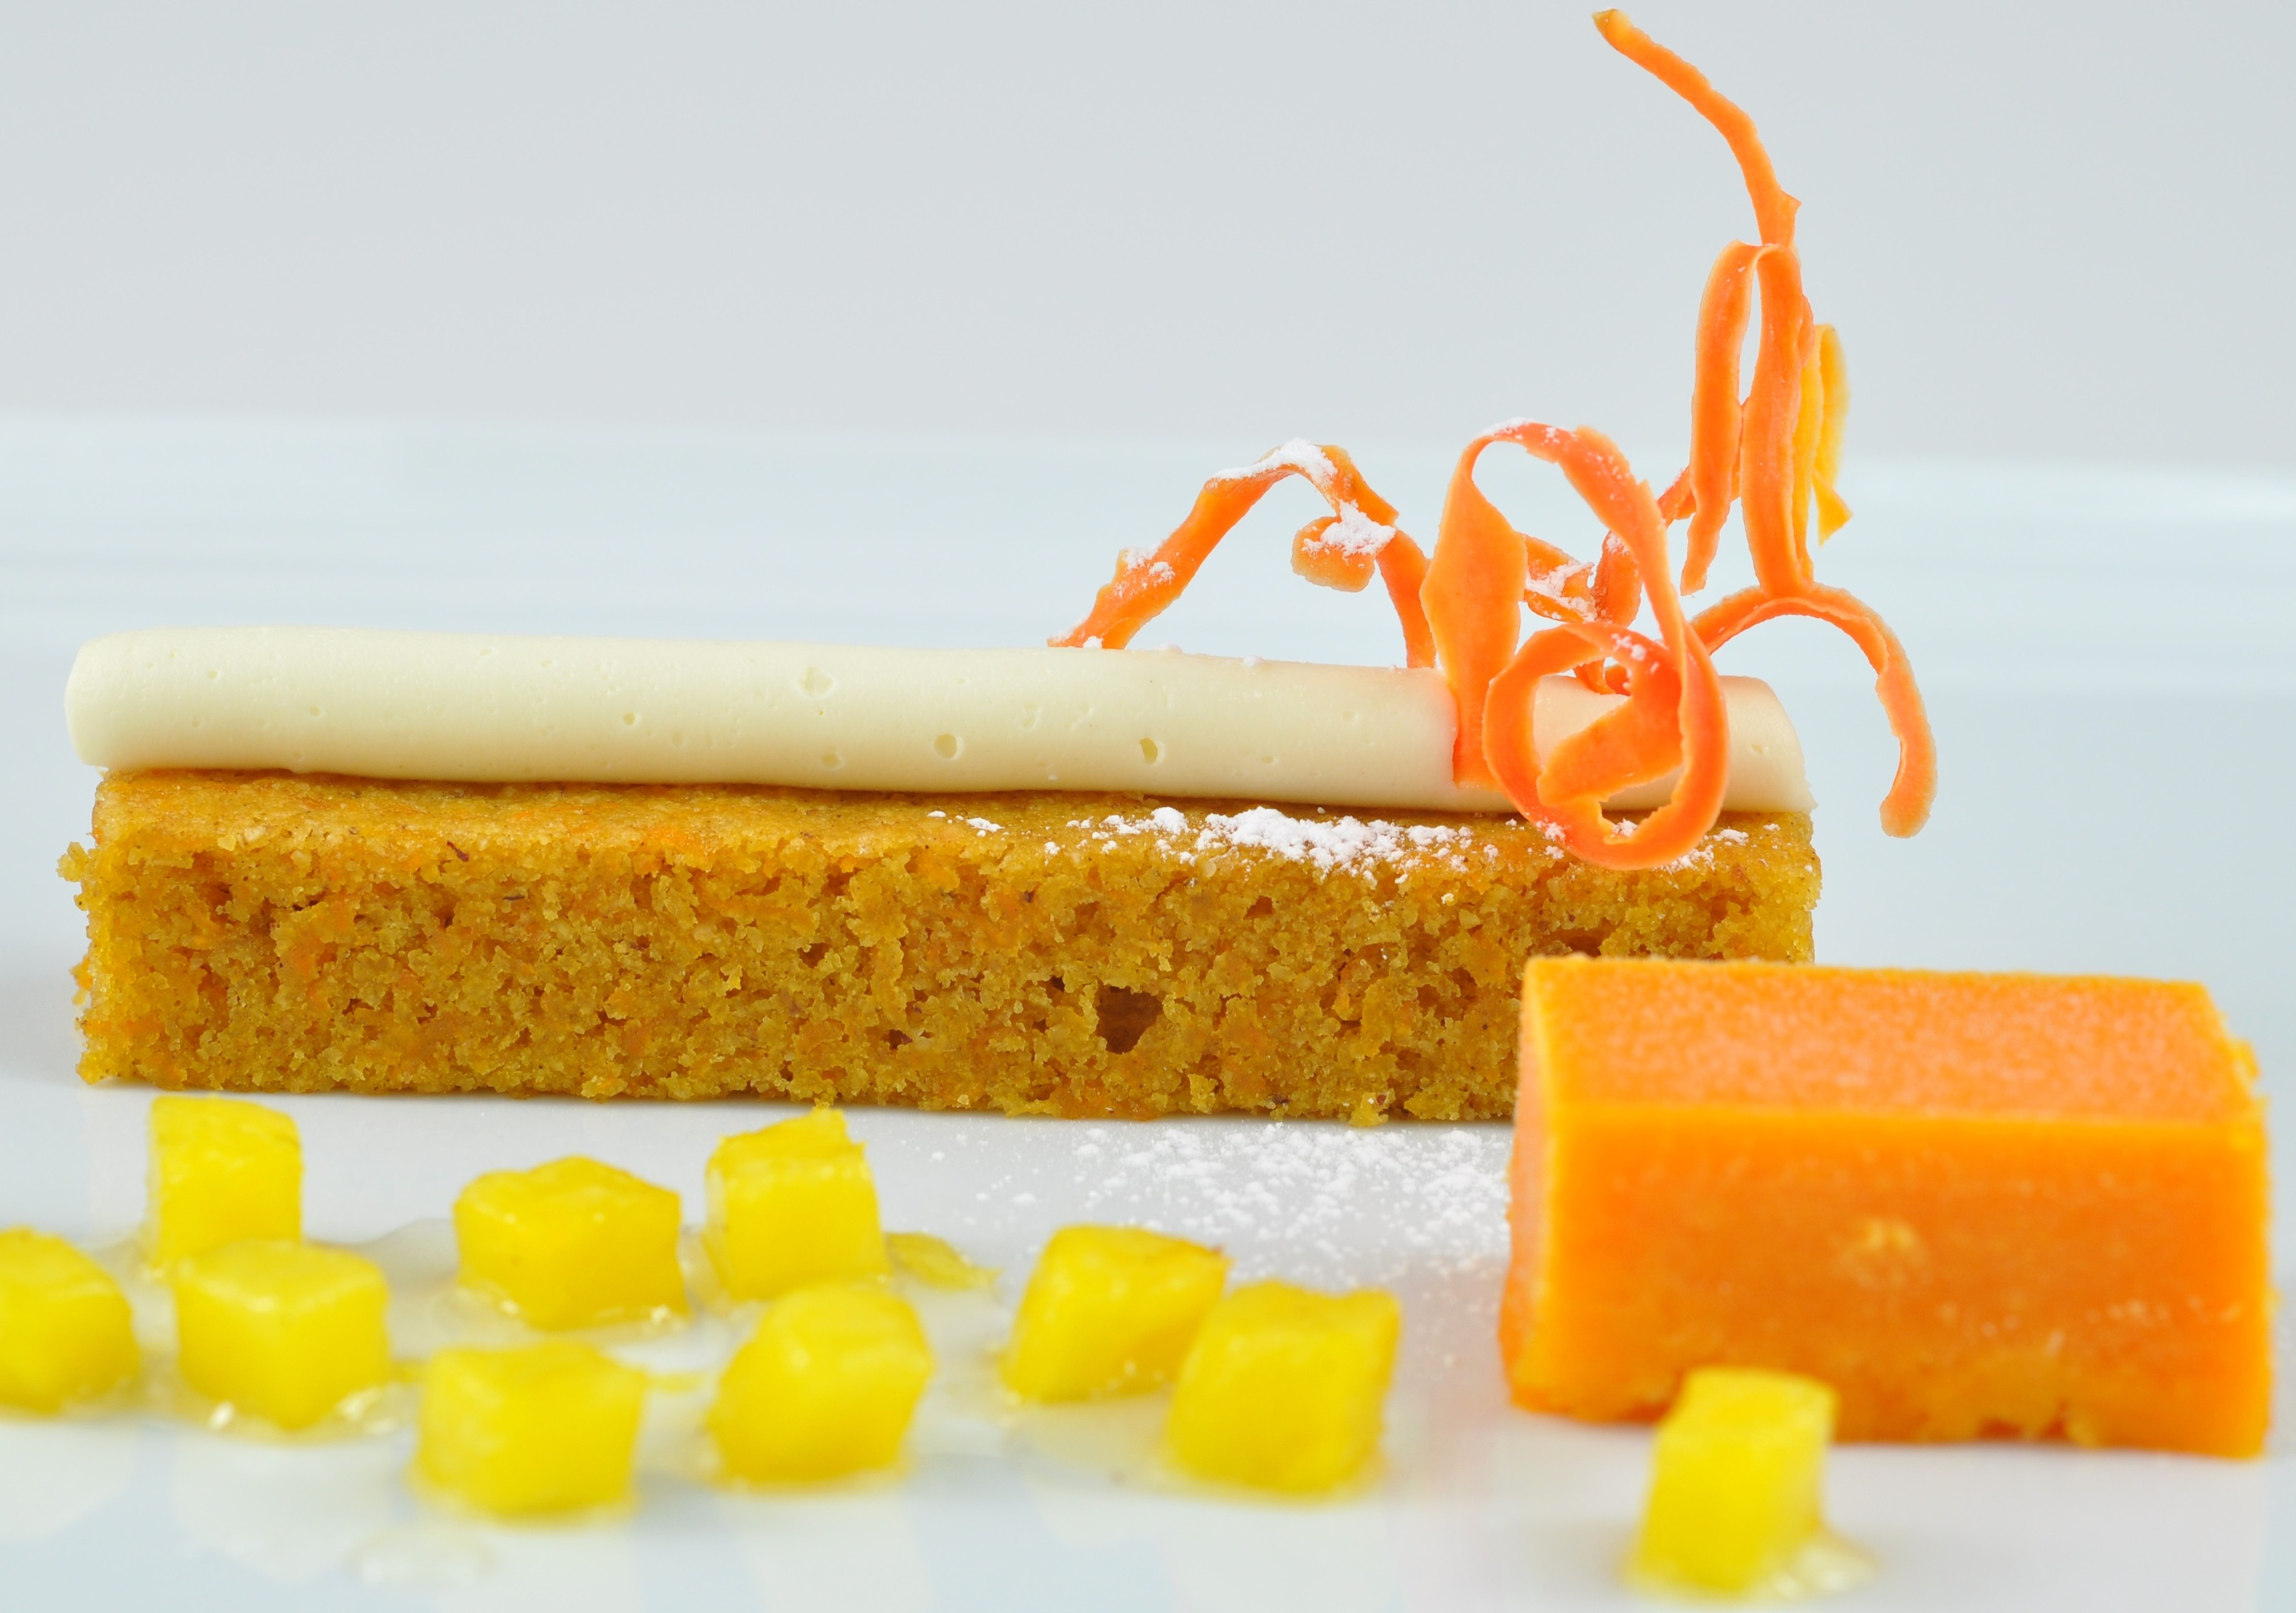 Plated Carrot Cake